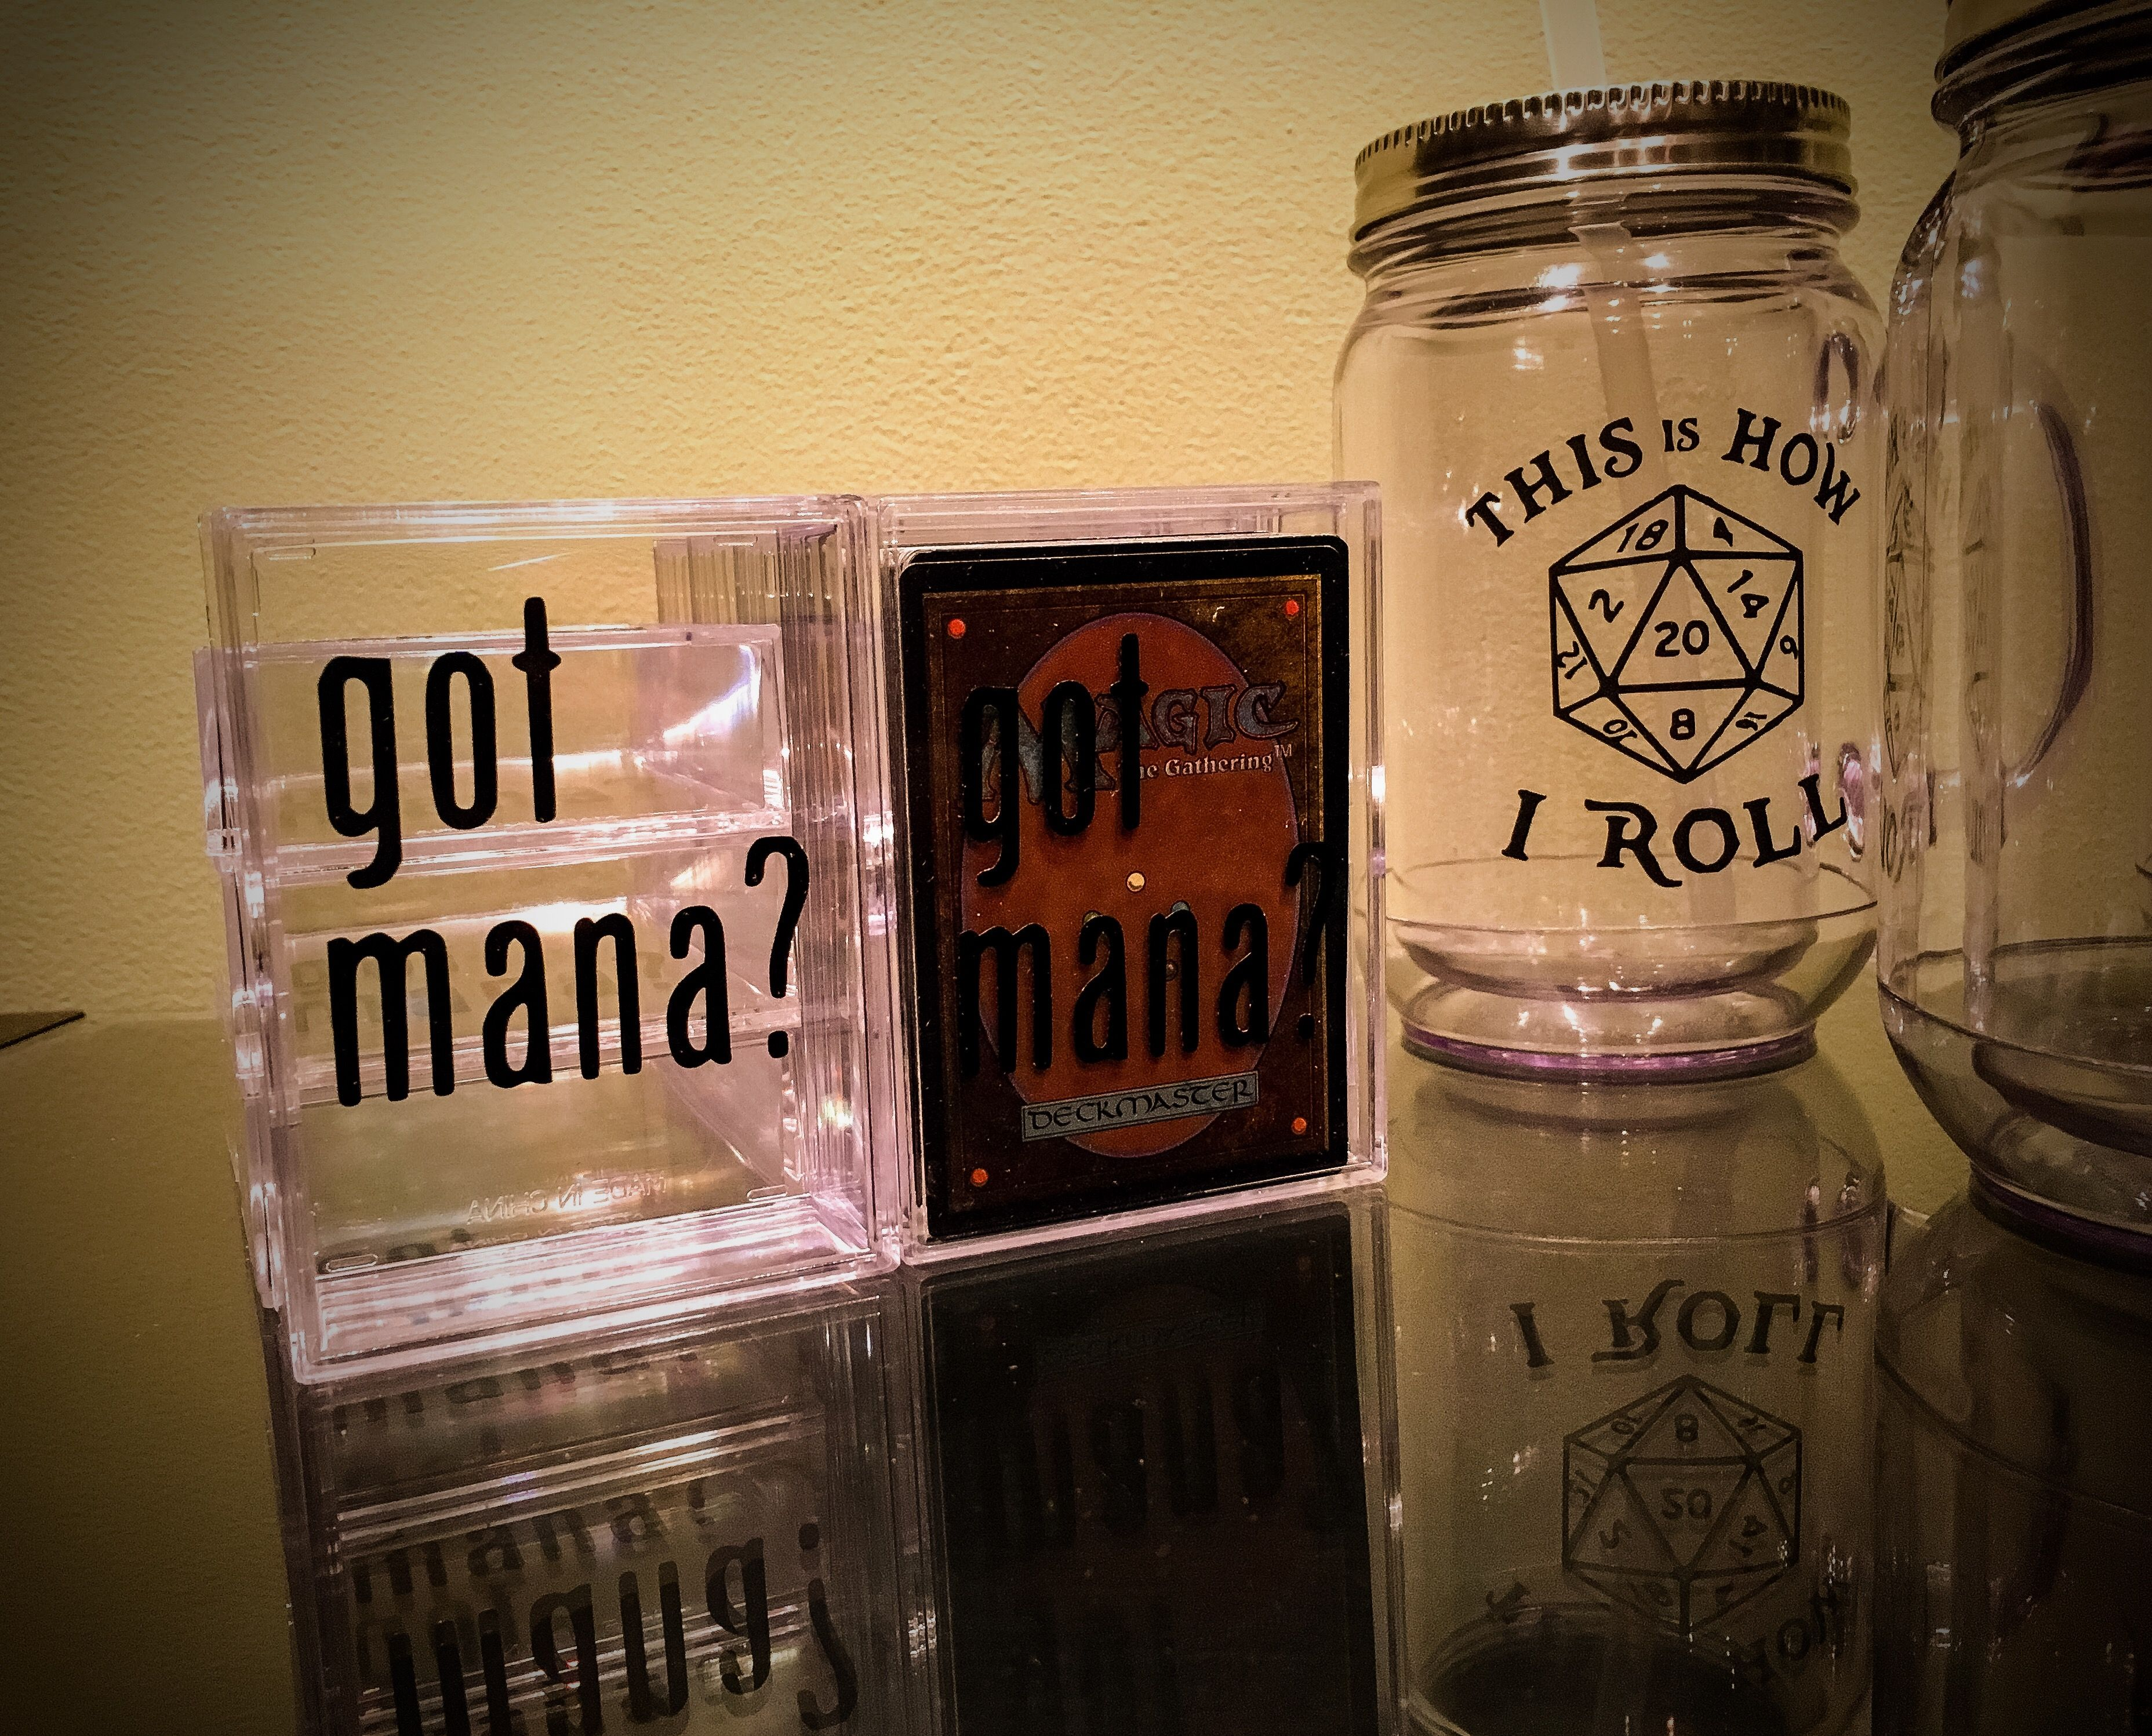 Pin by cristina valdaliso on boys magic the gathering mtg party game room decor mtg geek culture boyfriend diys favors bricolage boyfriends do it yourself solutioingenieria Gallery